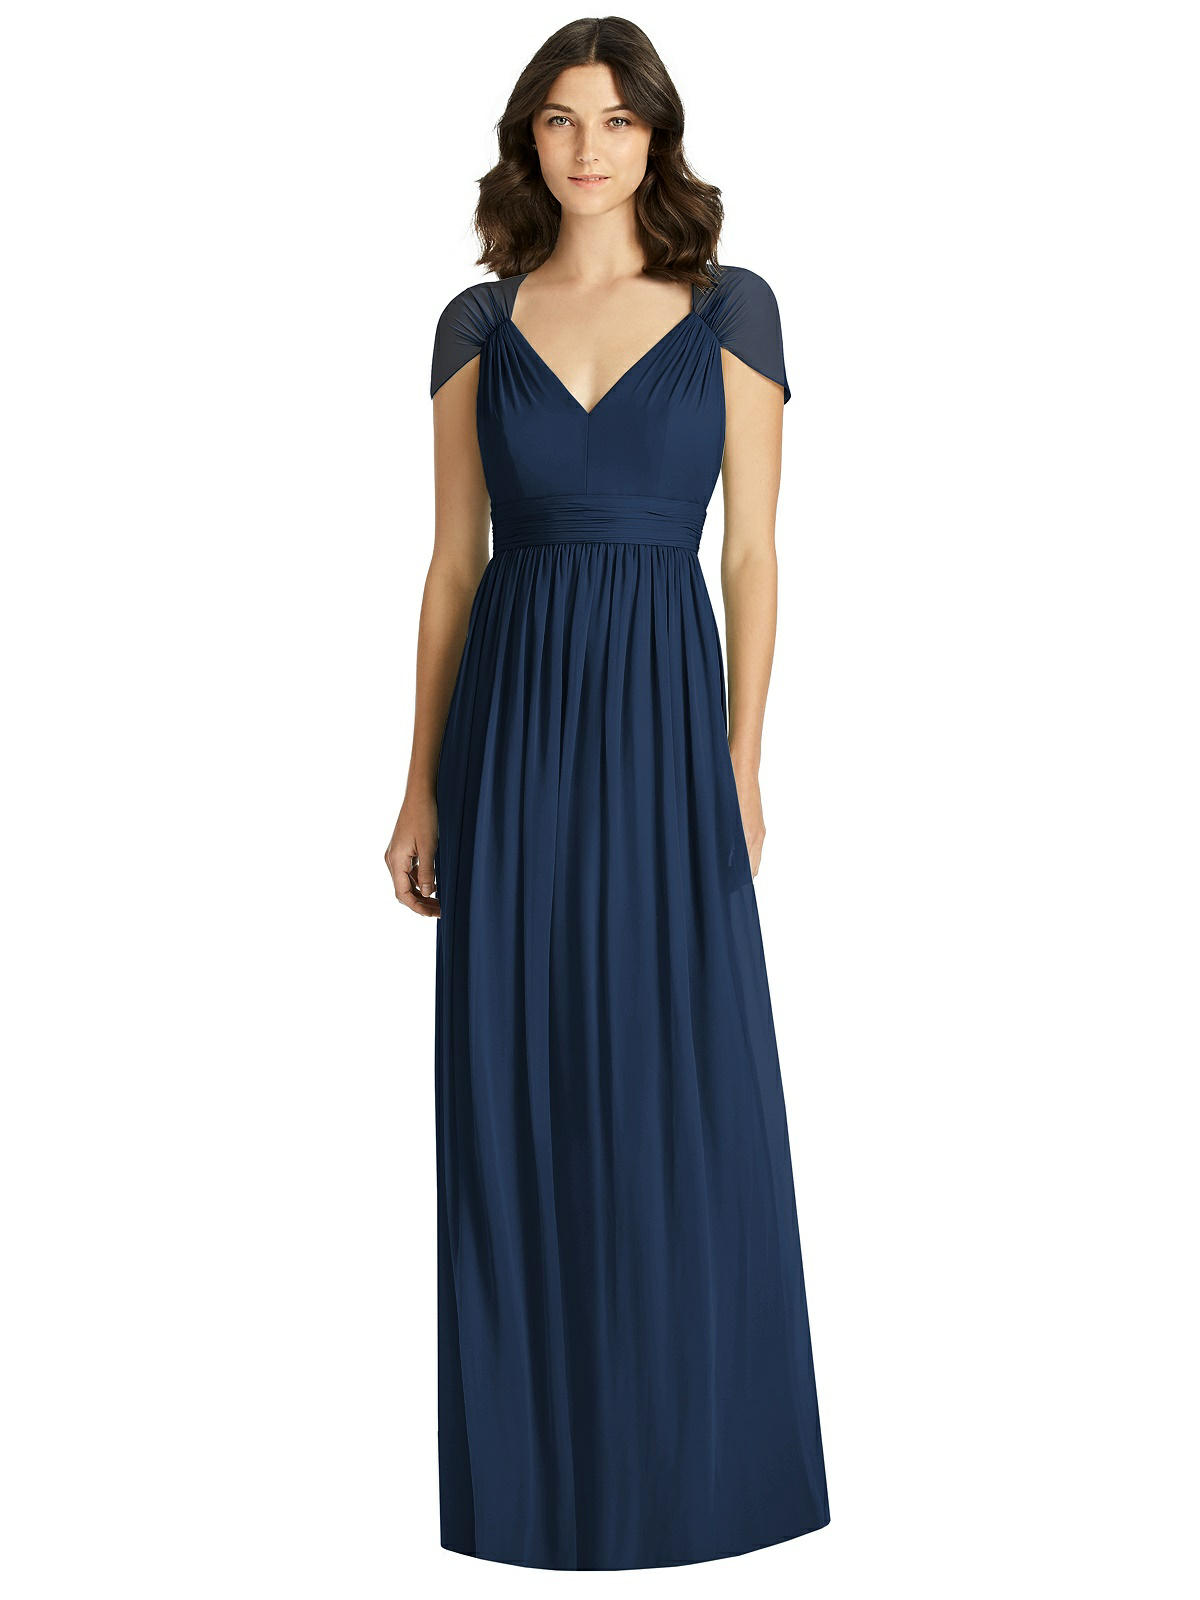 1940s Formal Dresses, Evening Gowns History Jenny Packham Bridesmaid Dress JP1021 $278.00 AT vintagedancer.com